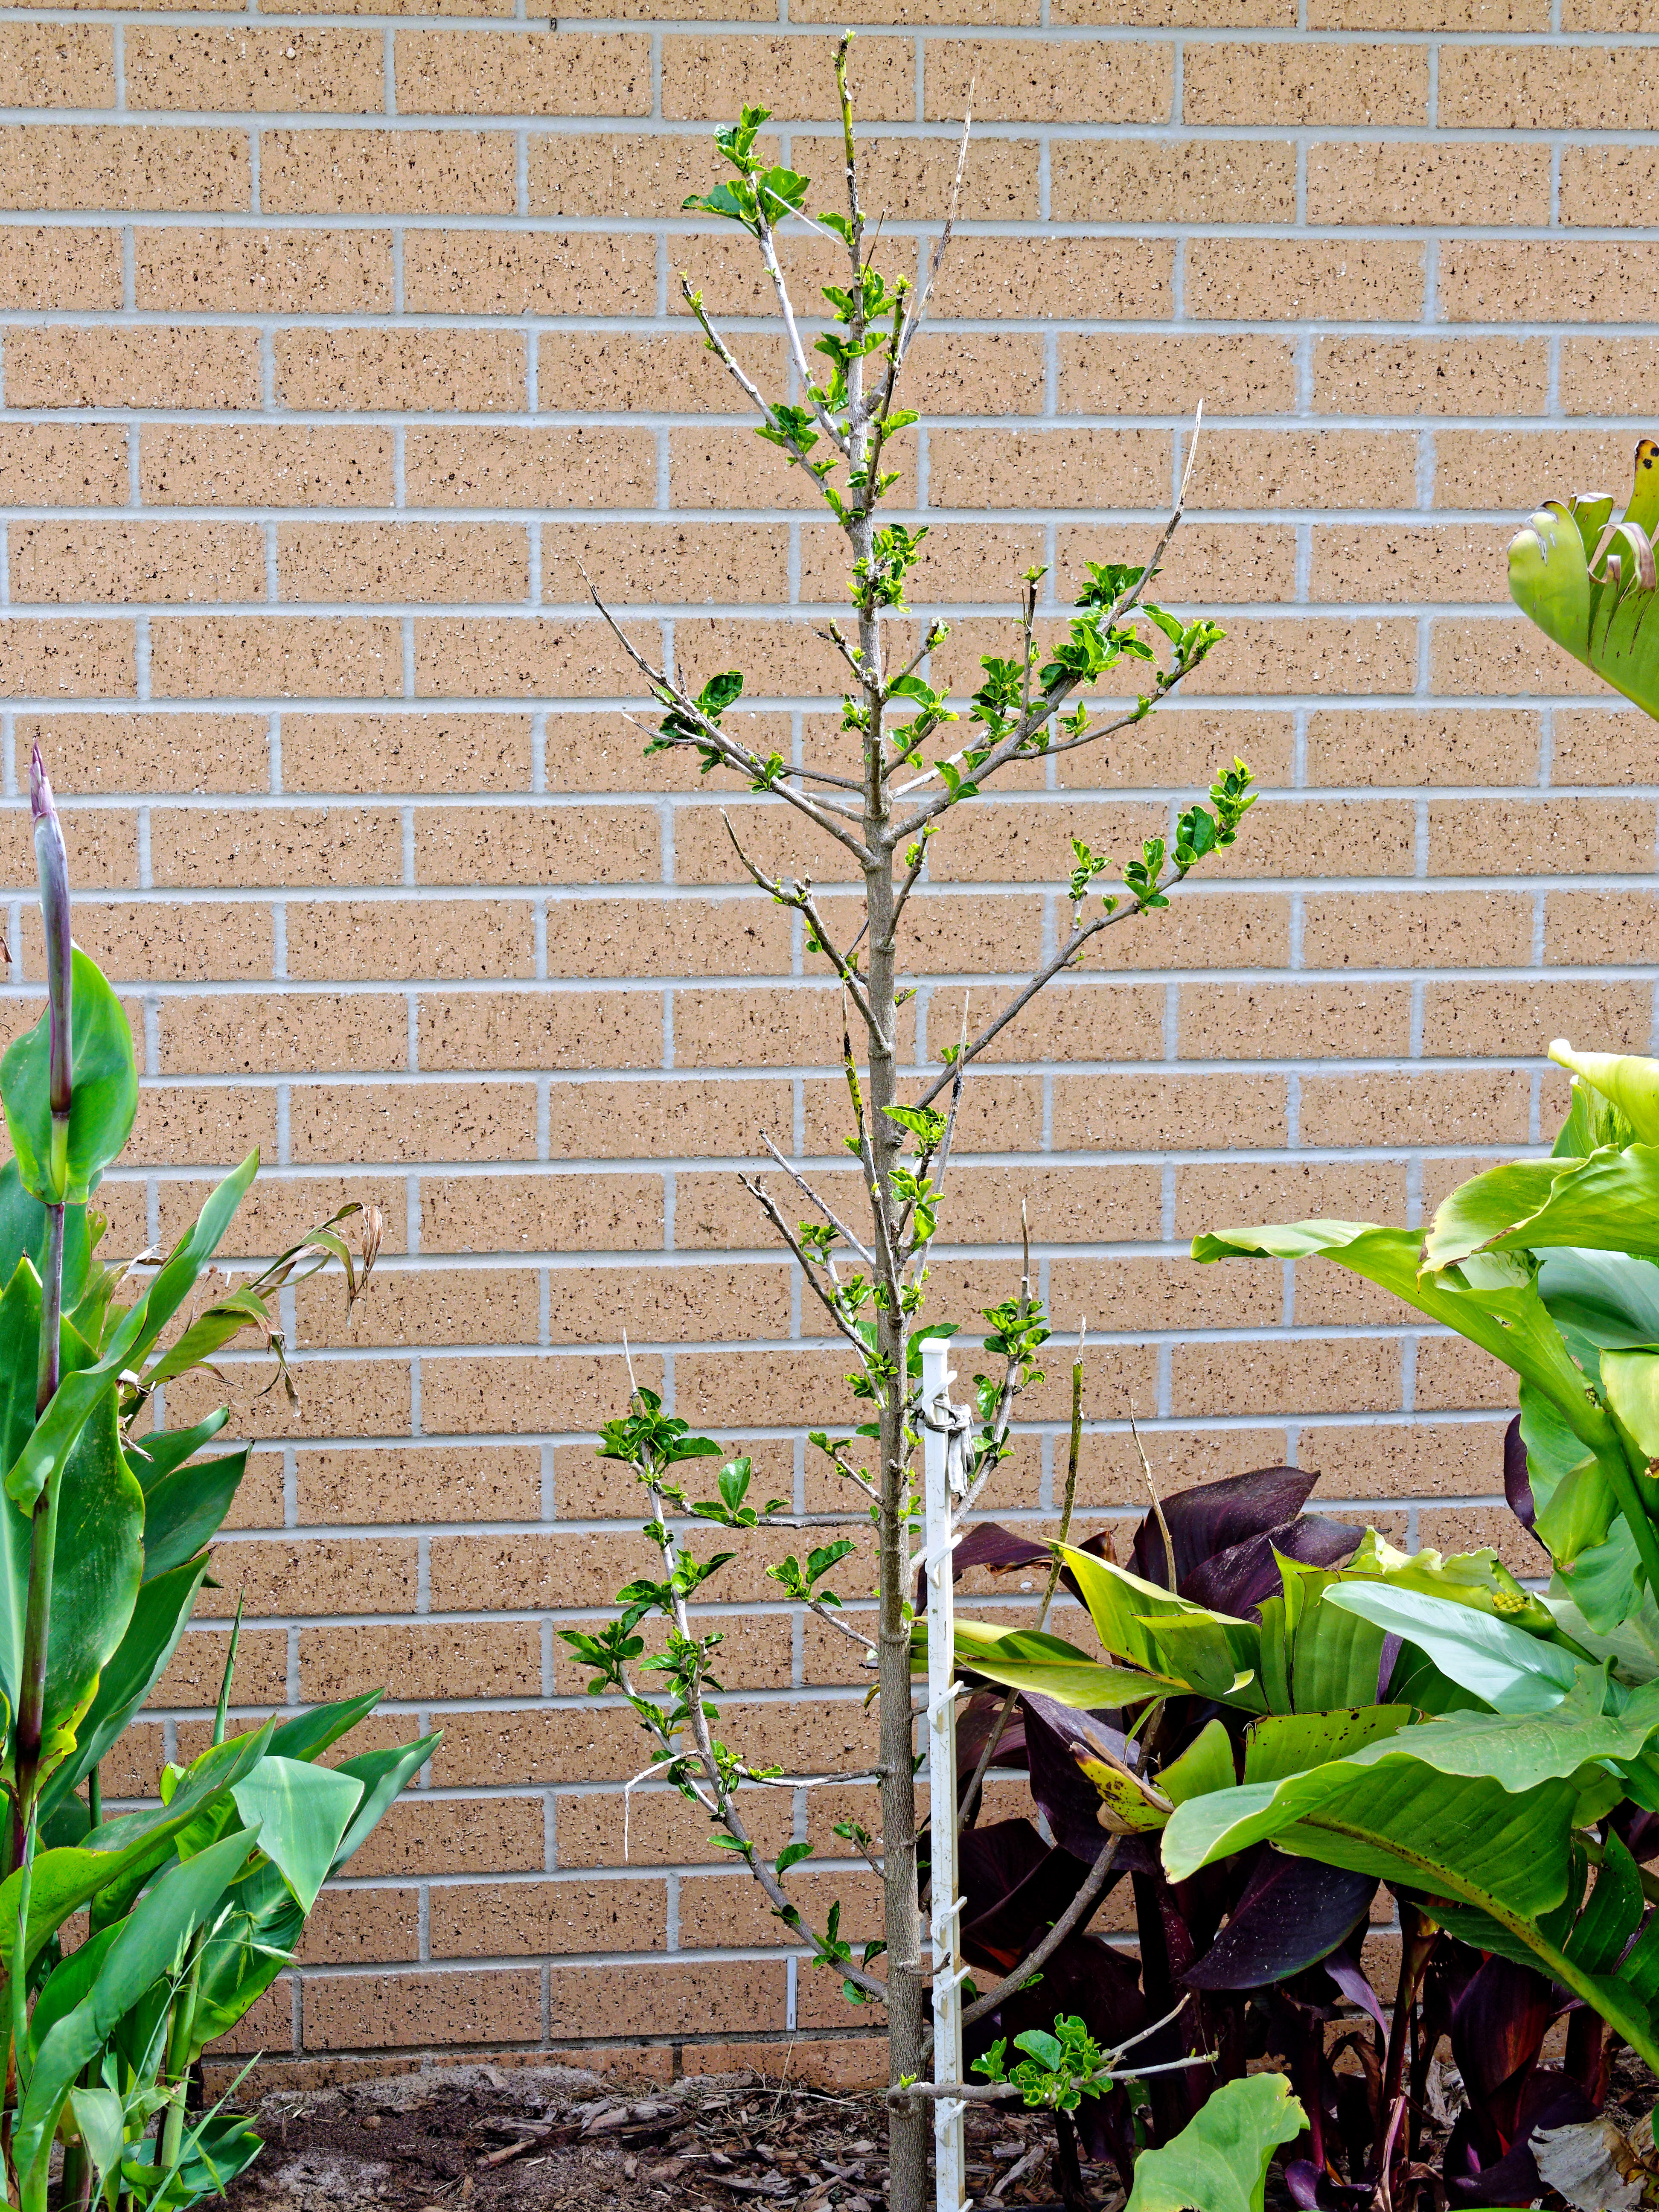 This should be Hibiscus-rosa-sinensis.jpeg.  Is it missing?